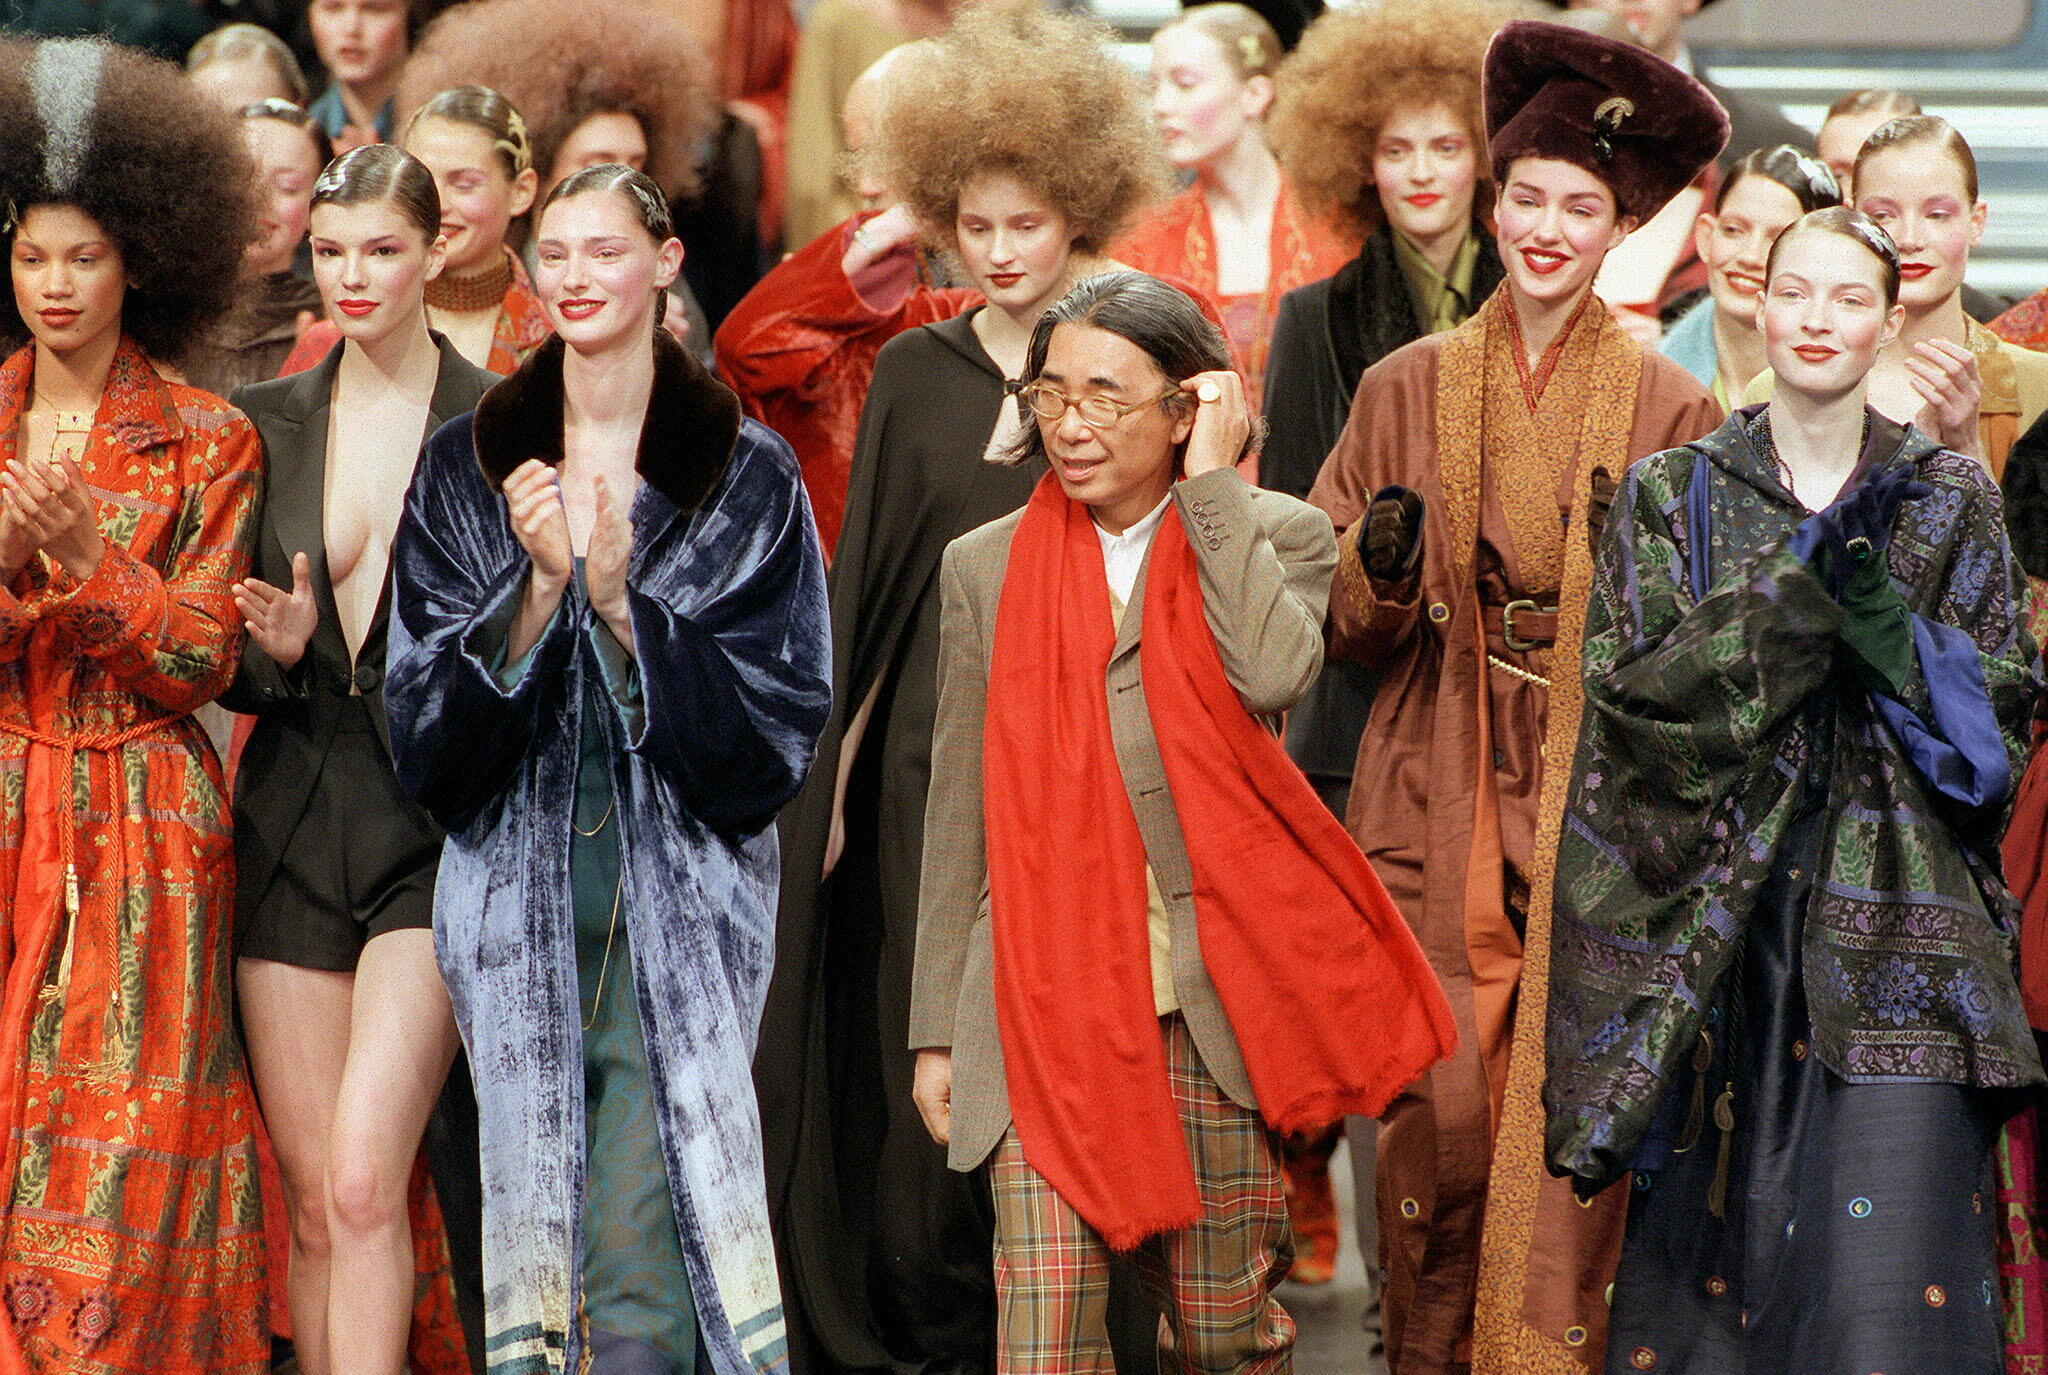 Kenzo Takada and models at the end of his ready-to-wear show in 1998 in París.